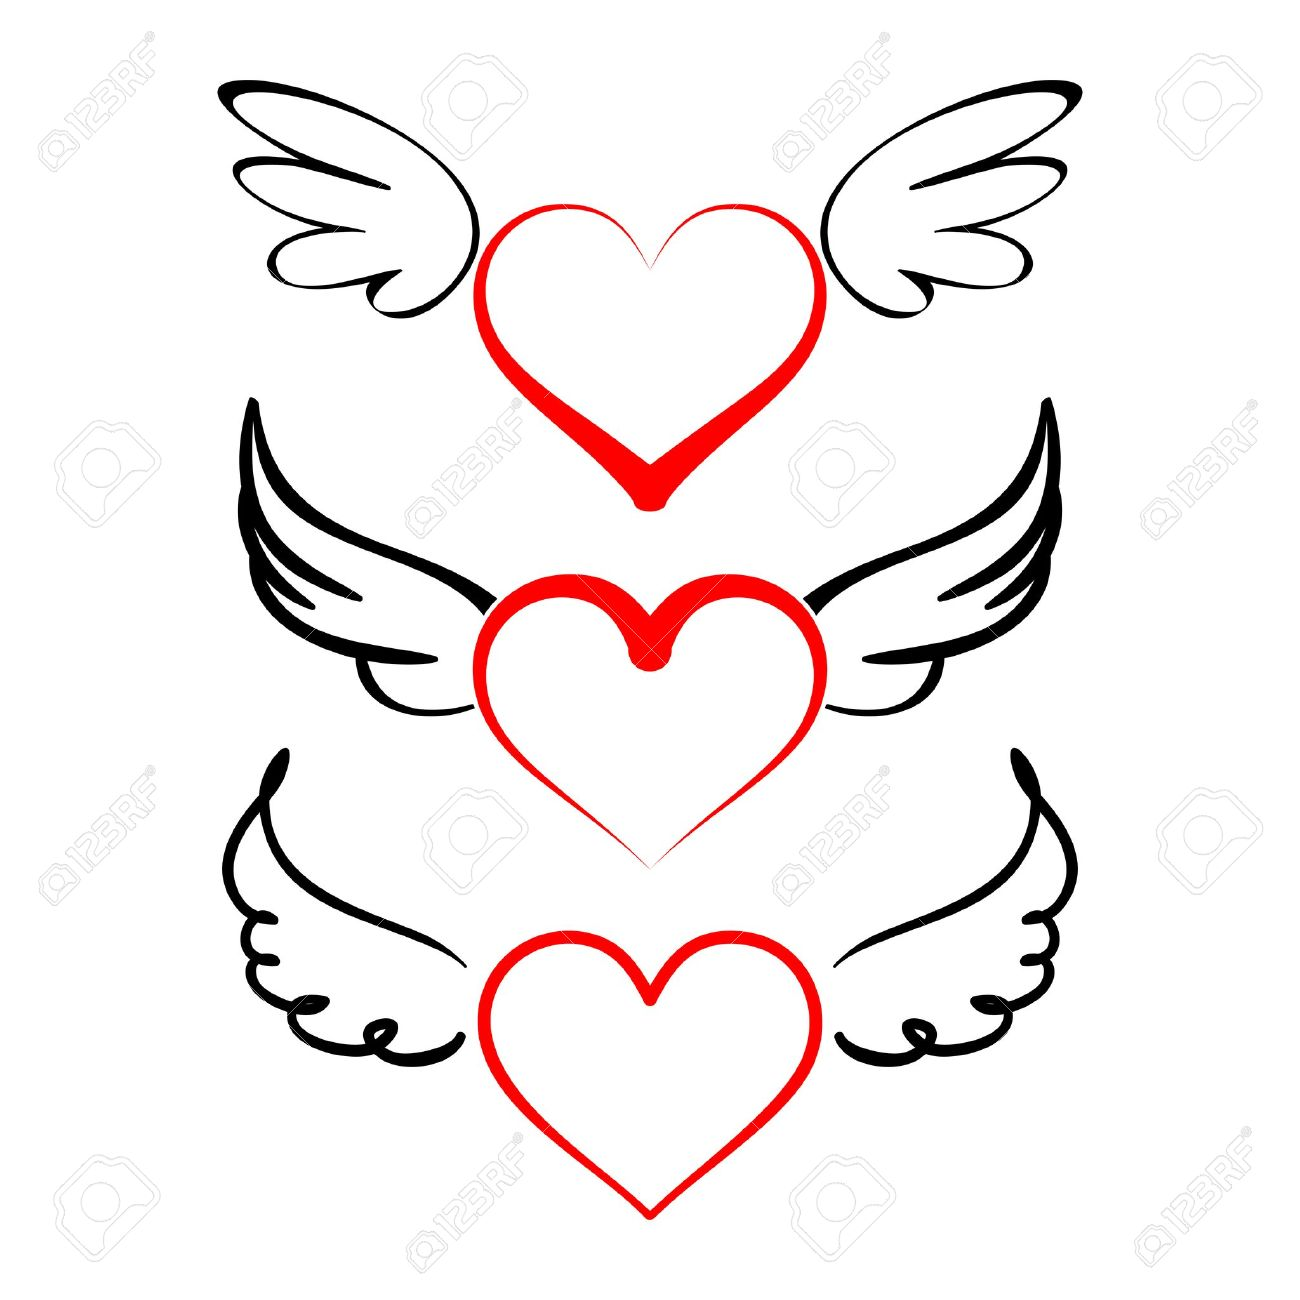 1300x1300 Heart With Wings Collection Cartoon Vector Illustration Tattoos